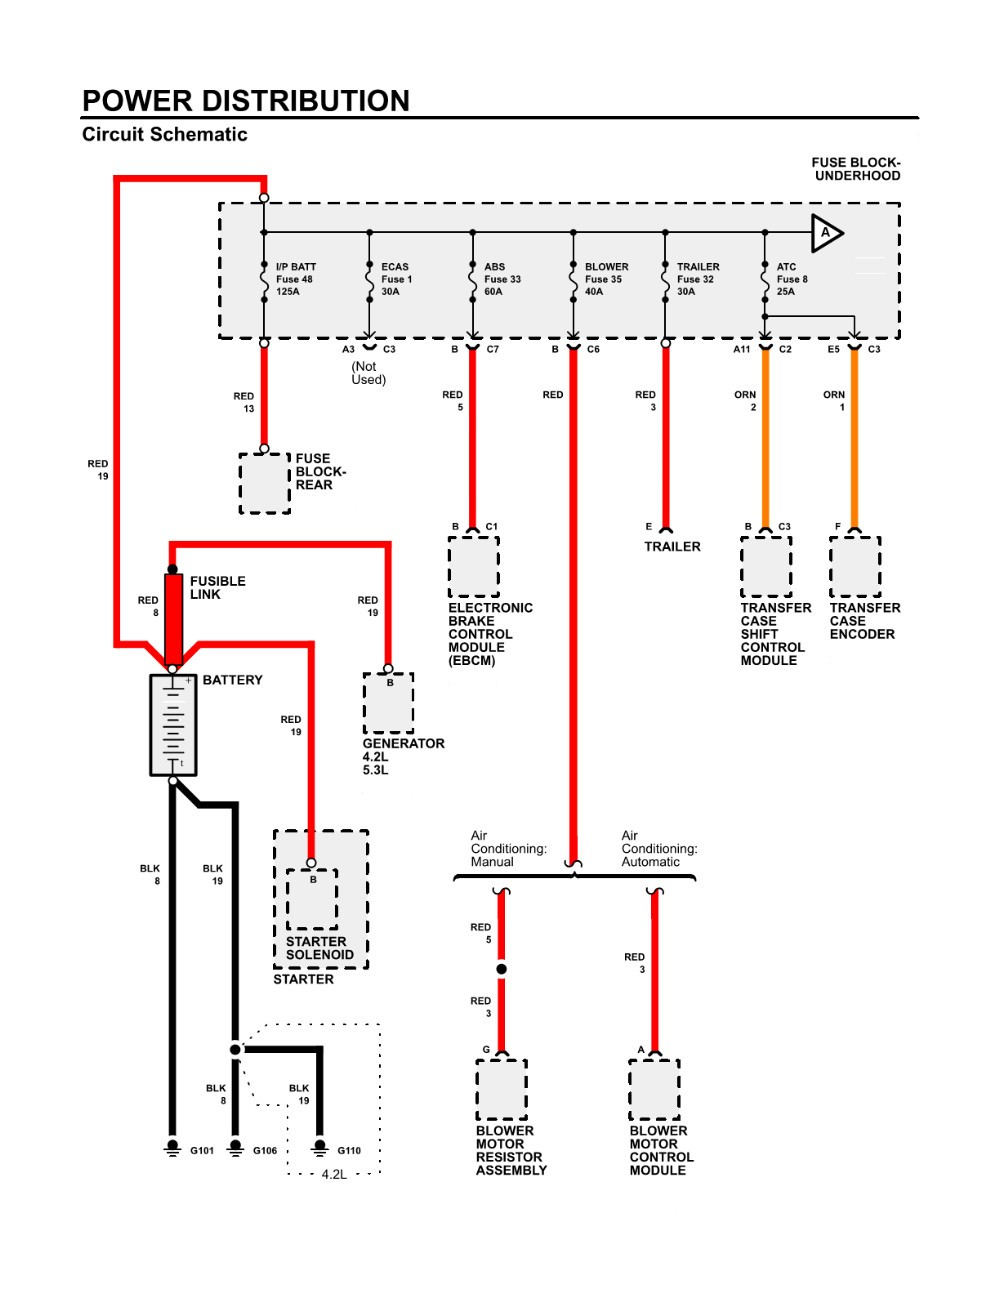 DIAGRAM] Bmw E46 Electric Fan Wiring Diagram FULL Version HD Quality Wiring  Diagram - INVESTGARDENDIAGRAM.K-DANSE.FRK-danse.fr